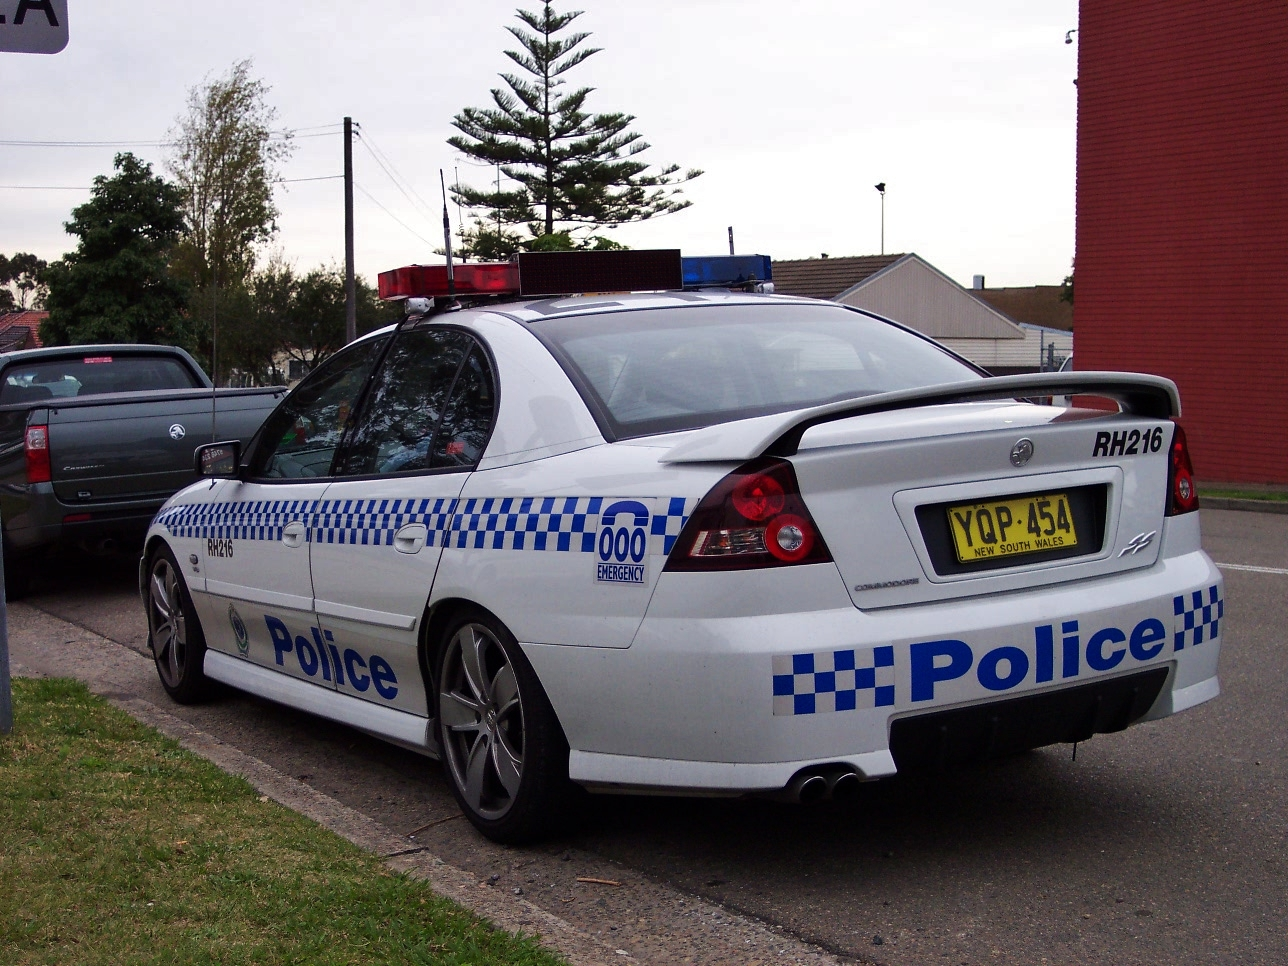 File2003 holden vy commodore ss nsw police 5498479772g file2003 holden vy commodore ss nsw police 5498479772g vanachro Images